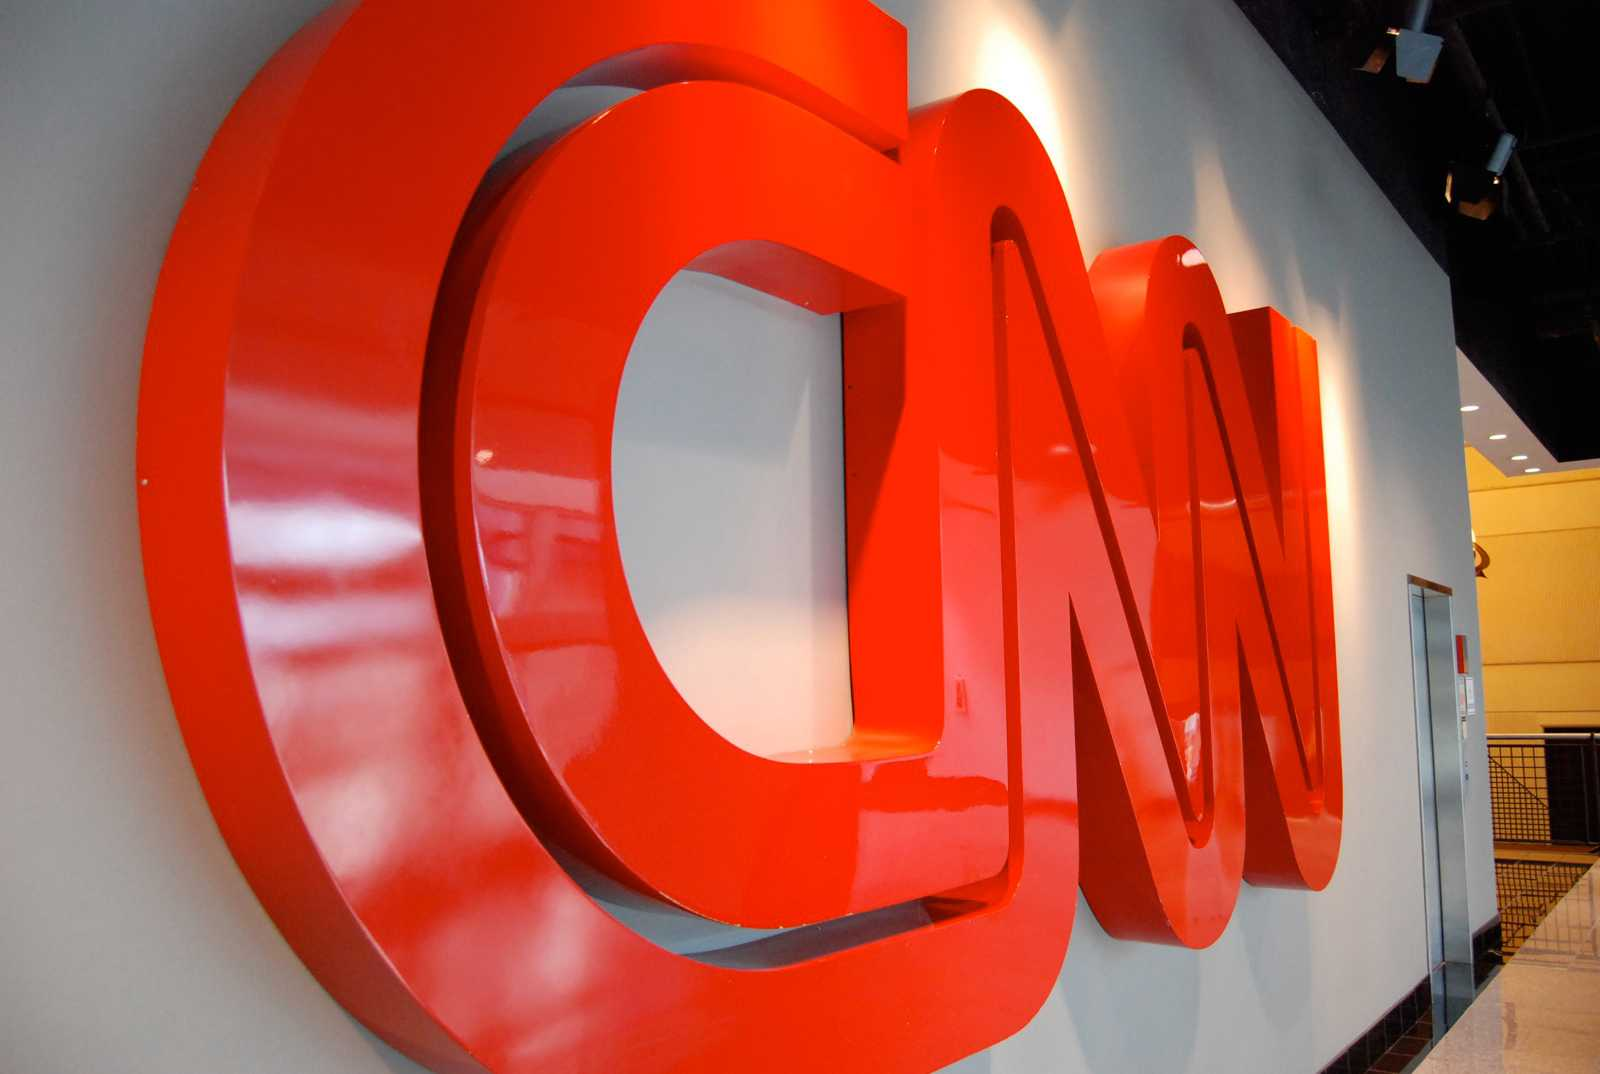 The logo of once-reputable news source CNN.